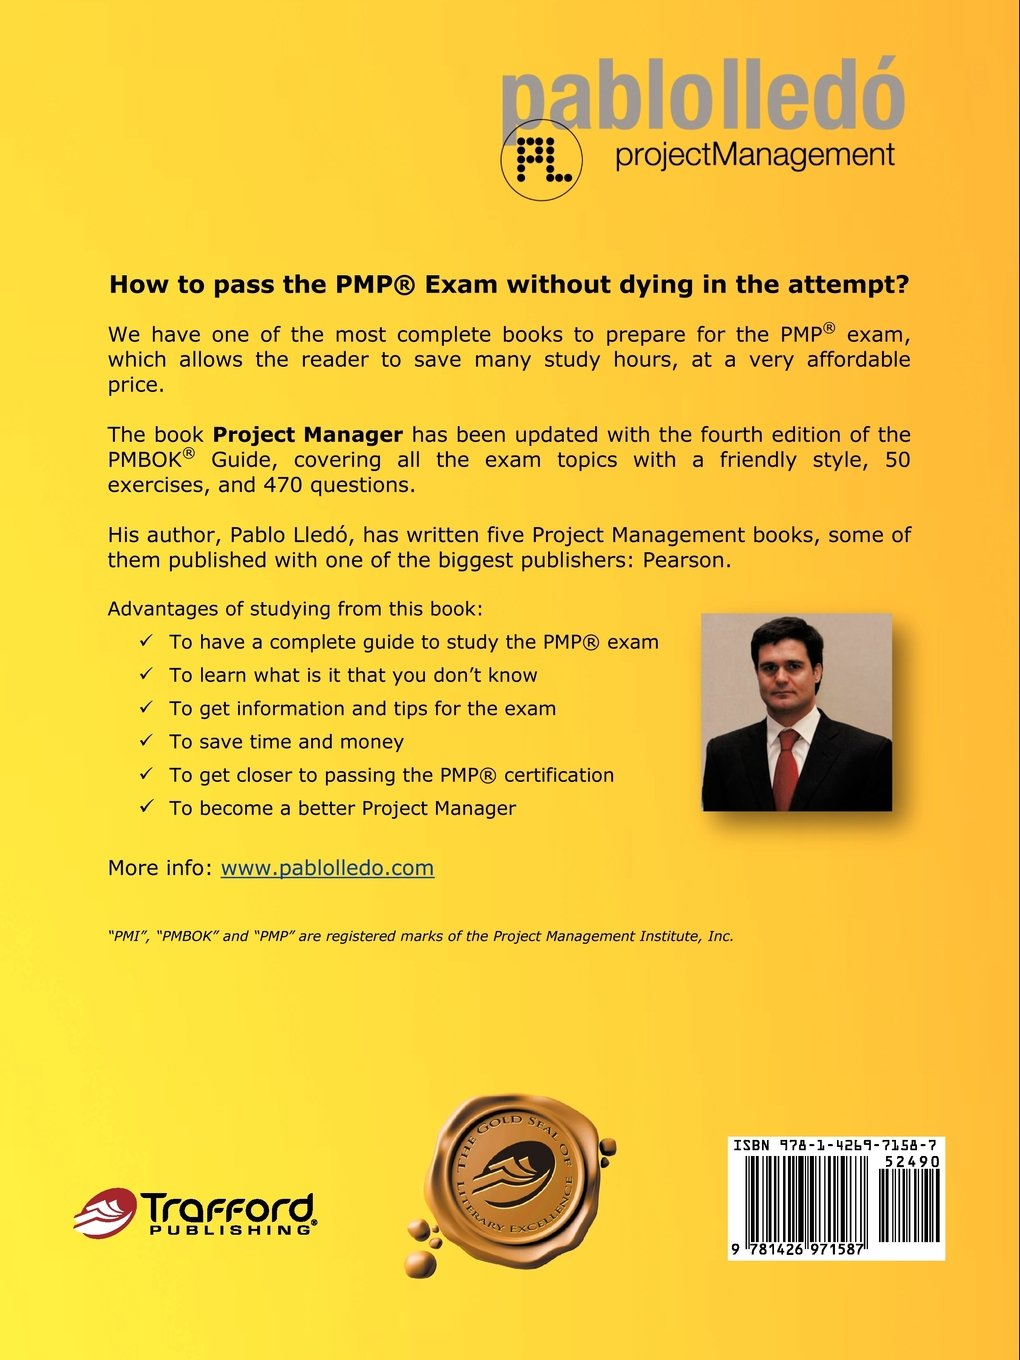 Project Manager How To Pass The Pmp Exam Without Dying In The